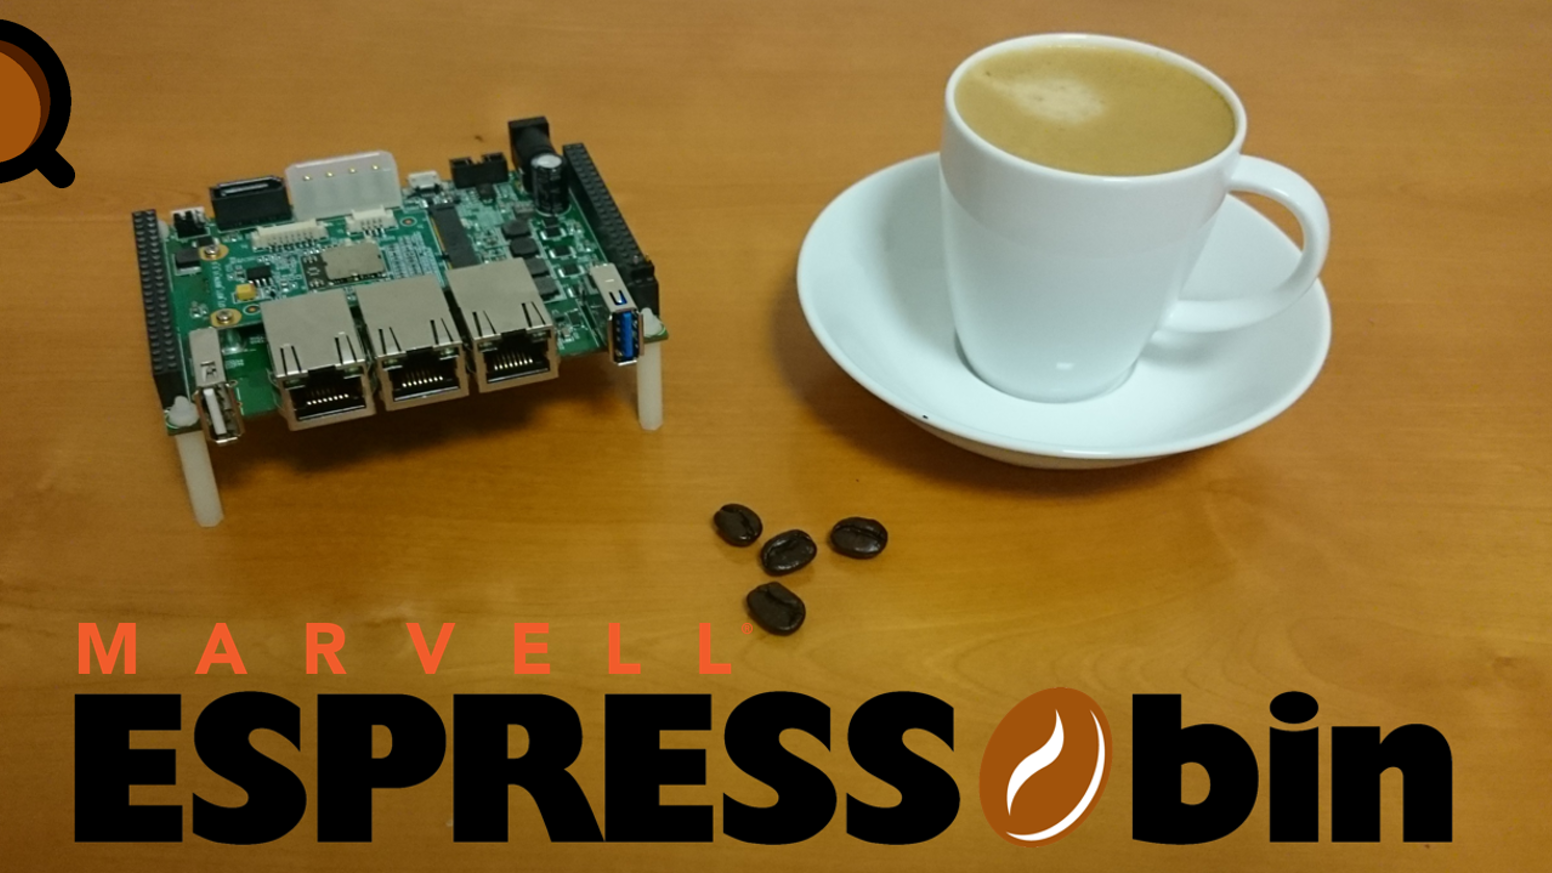 ESPRESSOBin is a high performance 64 bit dual core low power consuming networking computing platform based on the ARMv8 architecture